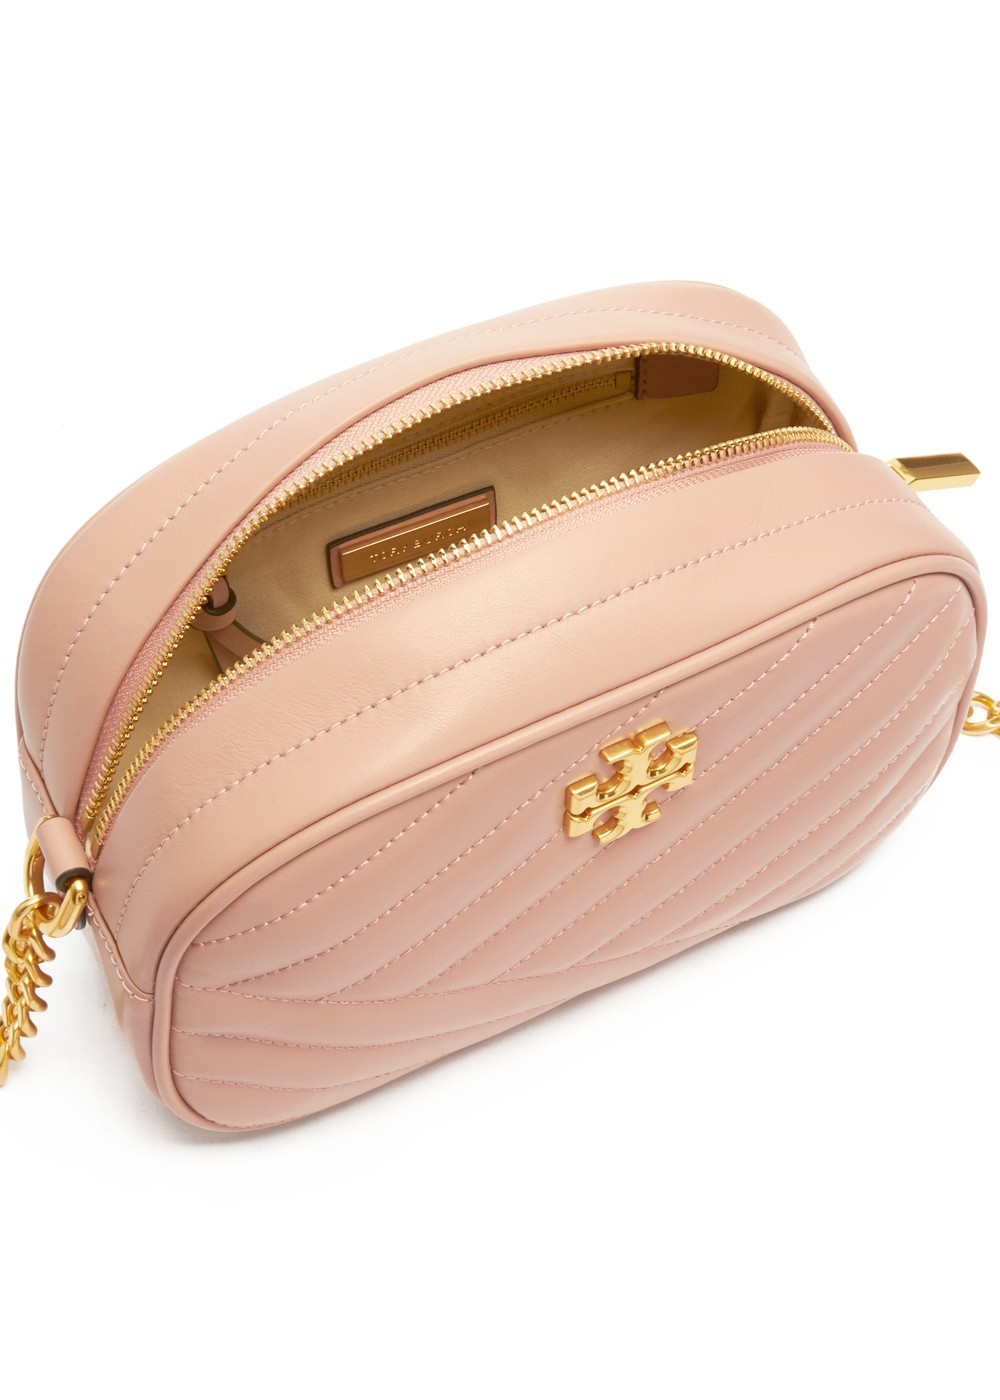 【最大48%OFF】【5/7入荷】KIRA CHEVRON CAMERA BAG|PINK MOON|ショルダーバッグ|Tory Burch